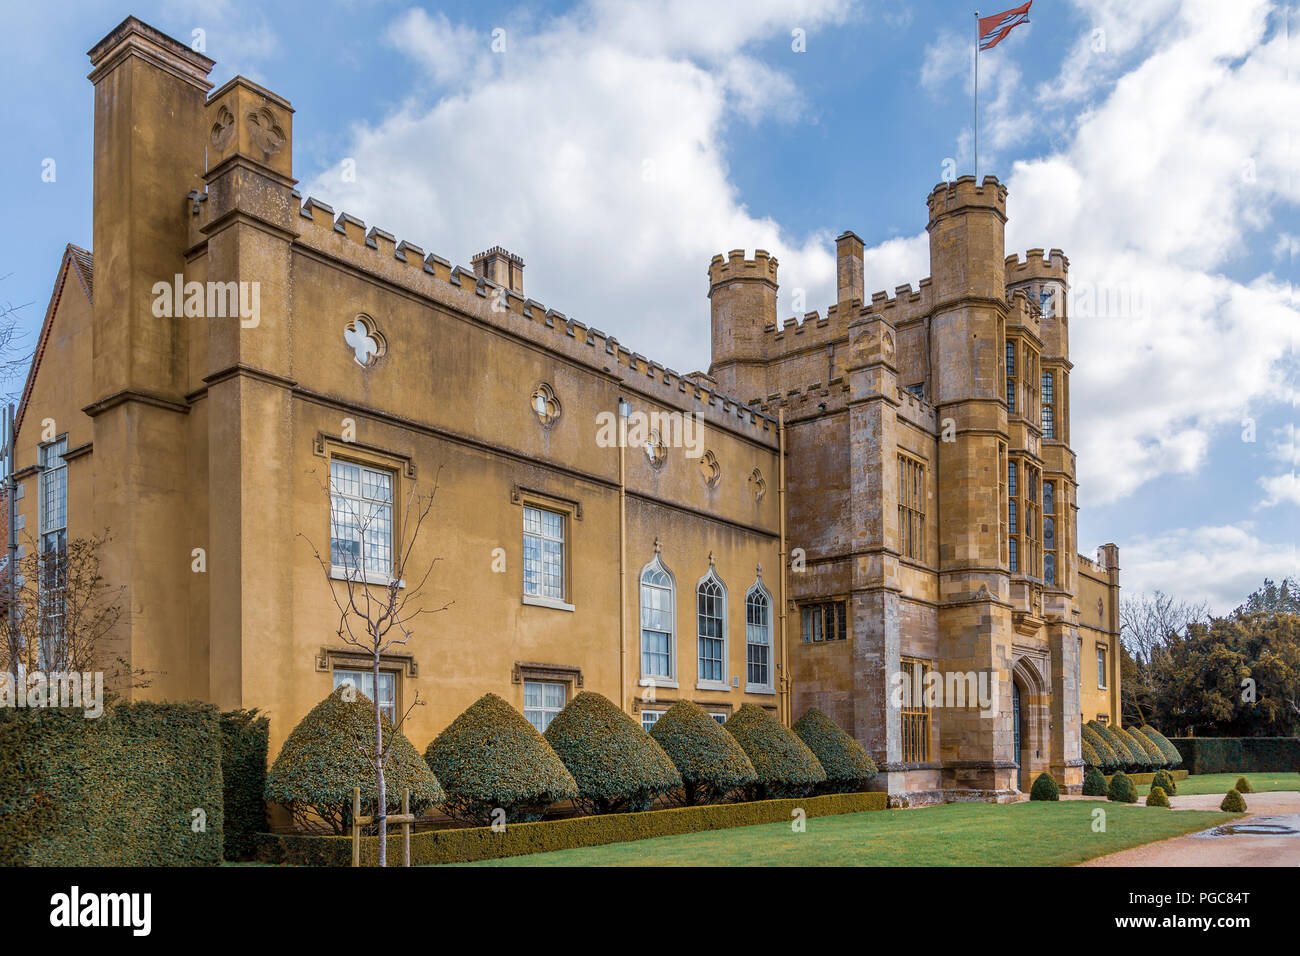 Views of the famous Coughton Court near Alcester, Warwickshire. - Stock Image